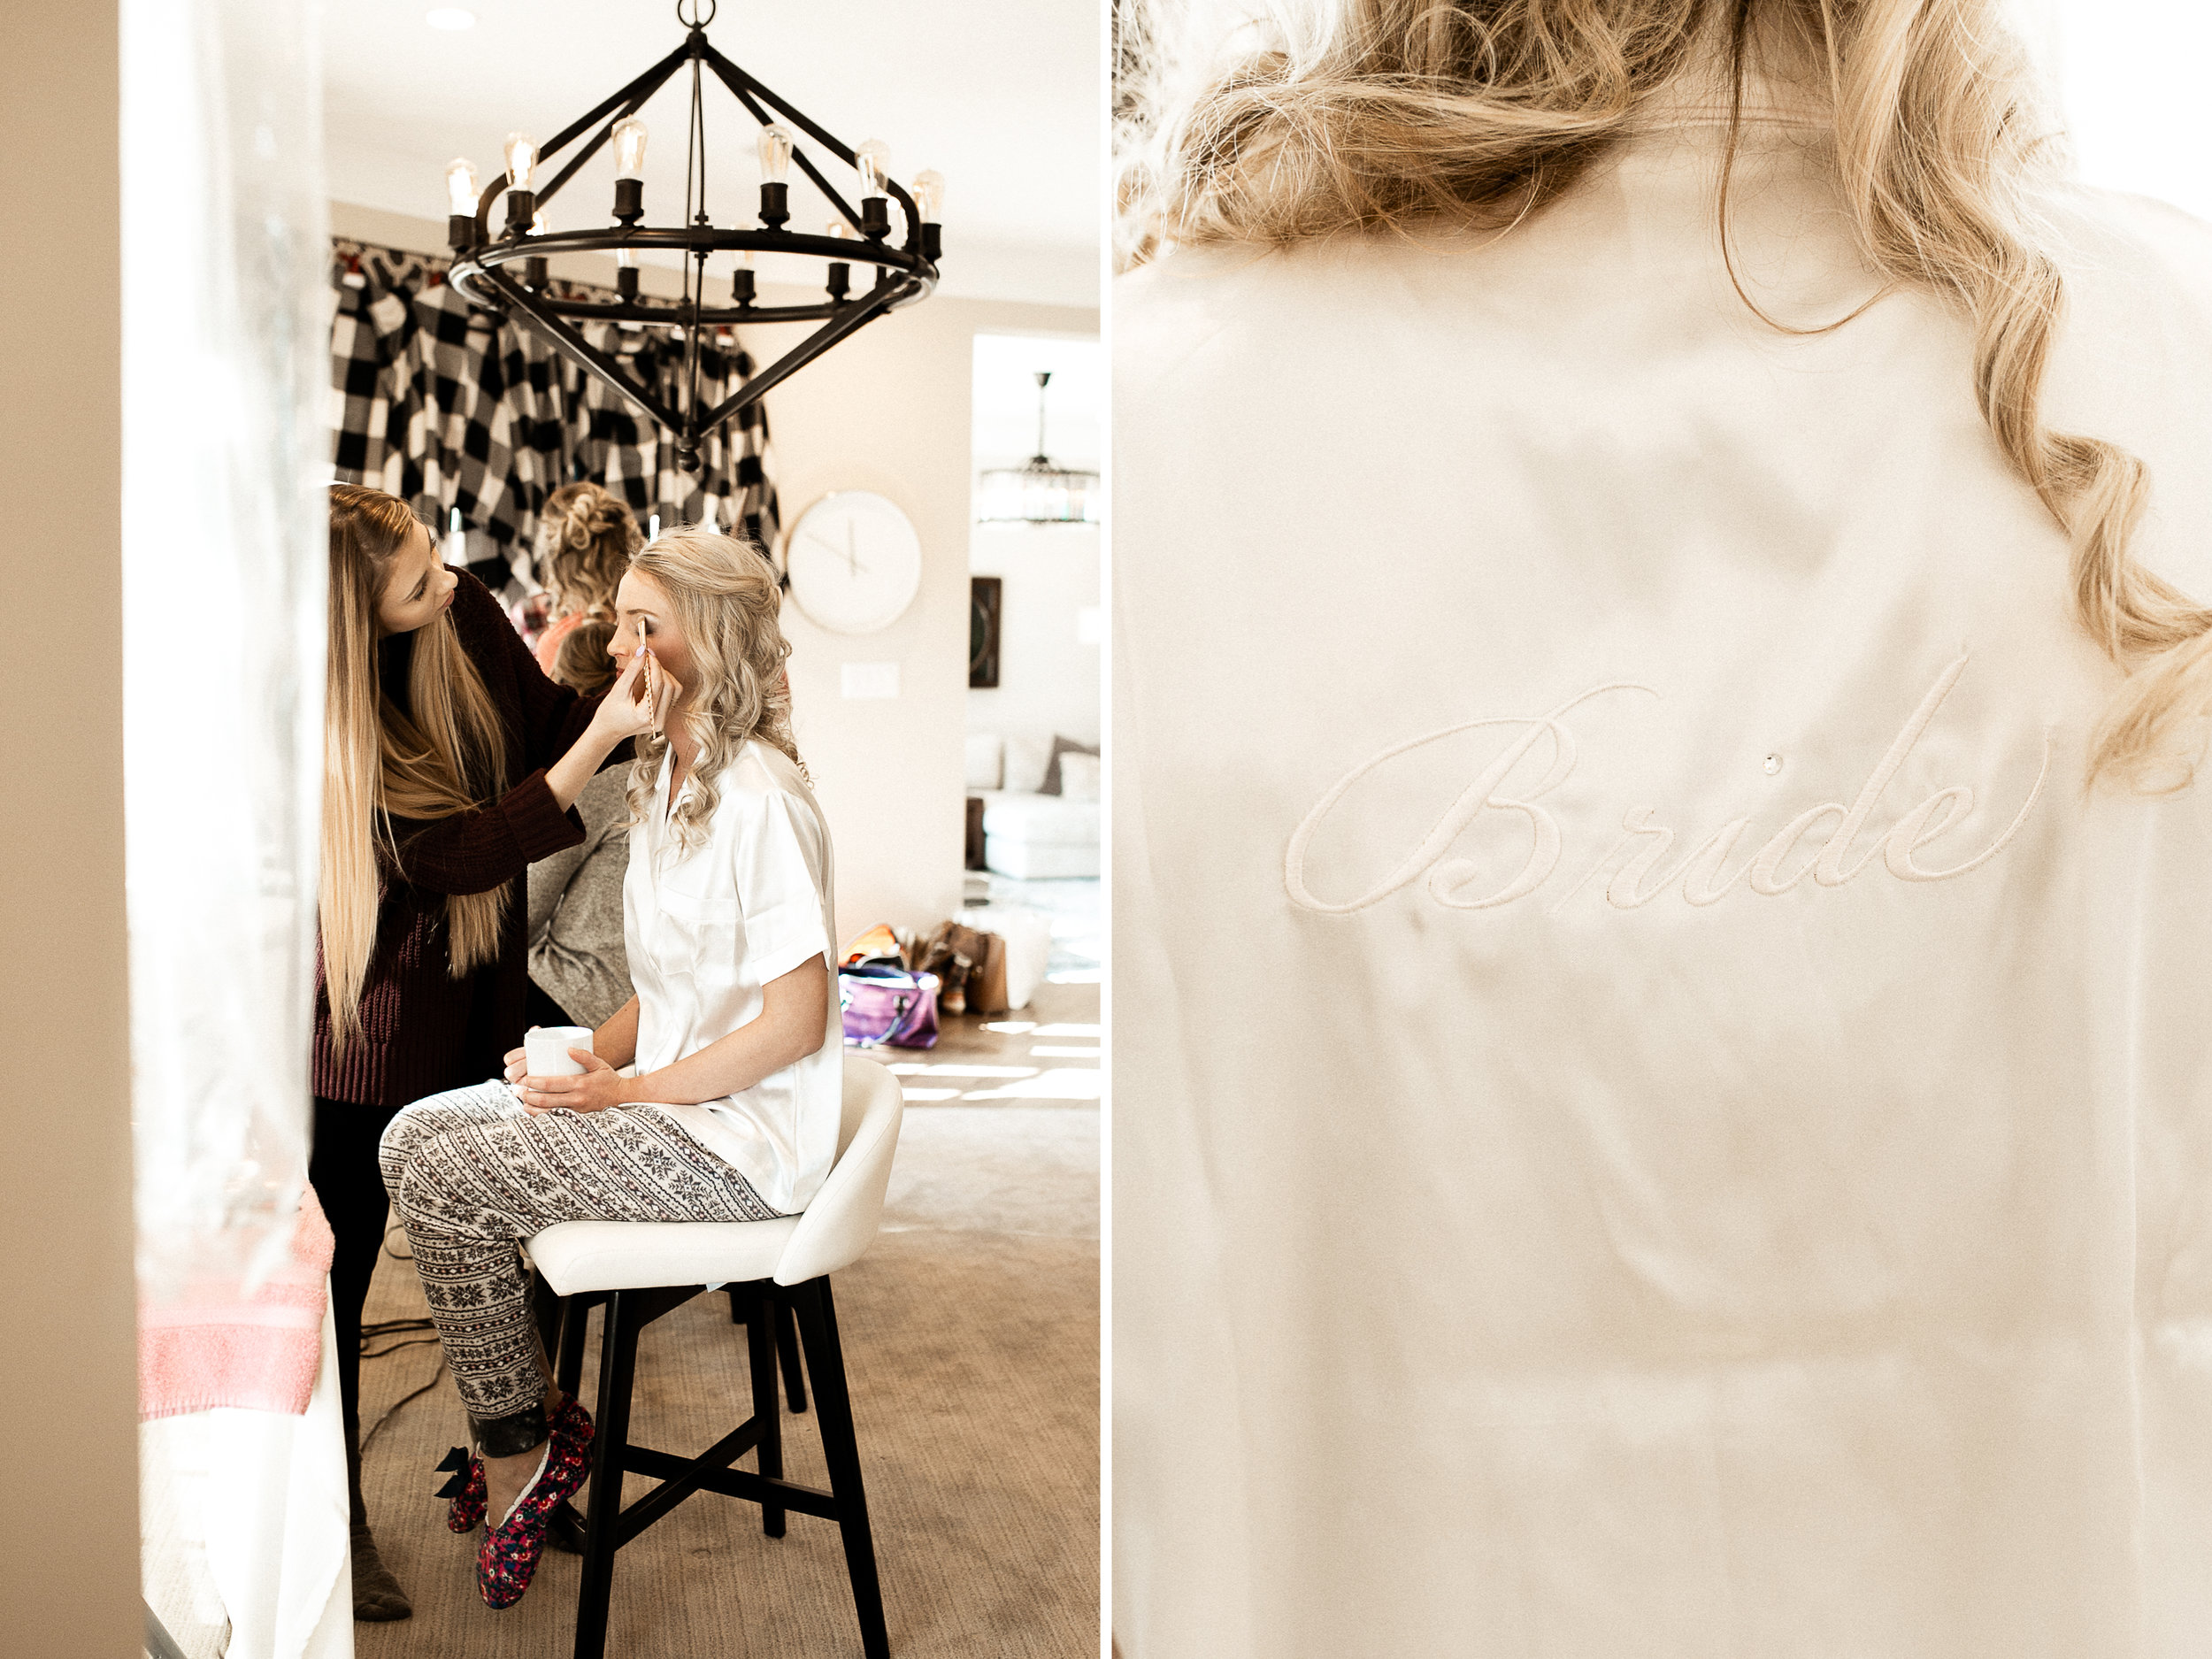 bridal-getting-ready-suite.jpg